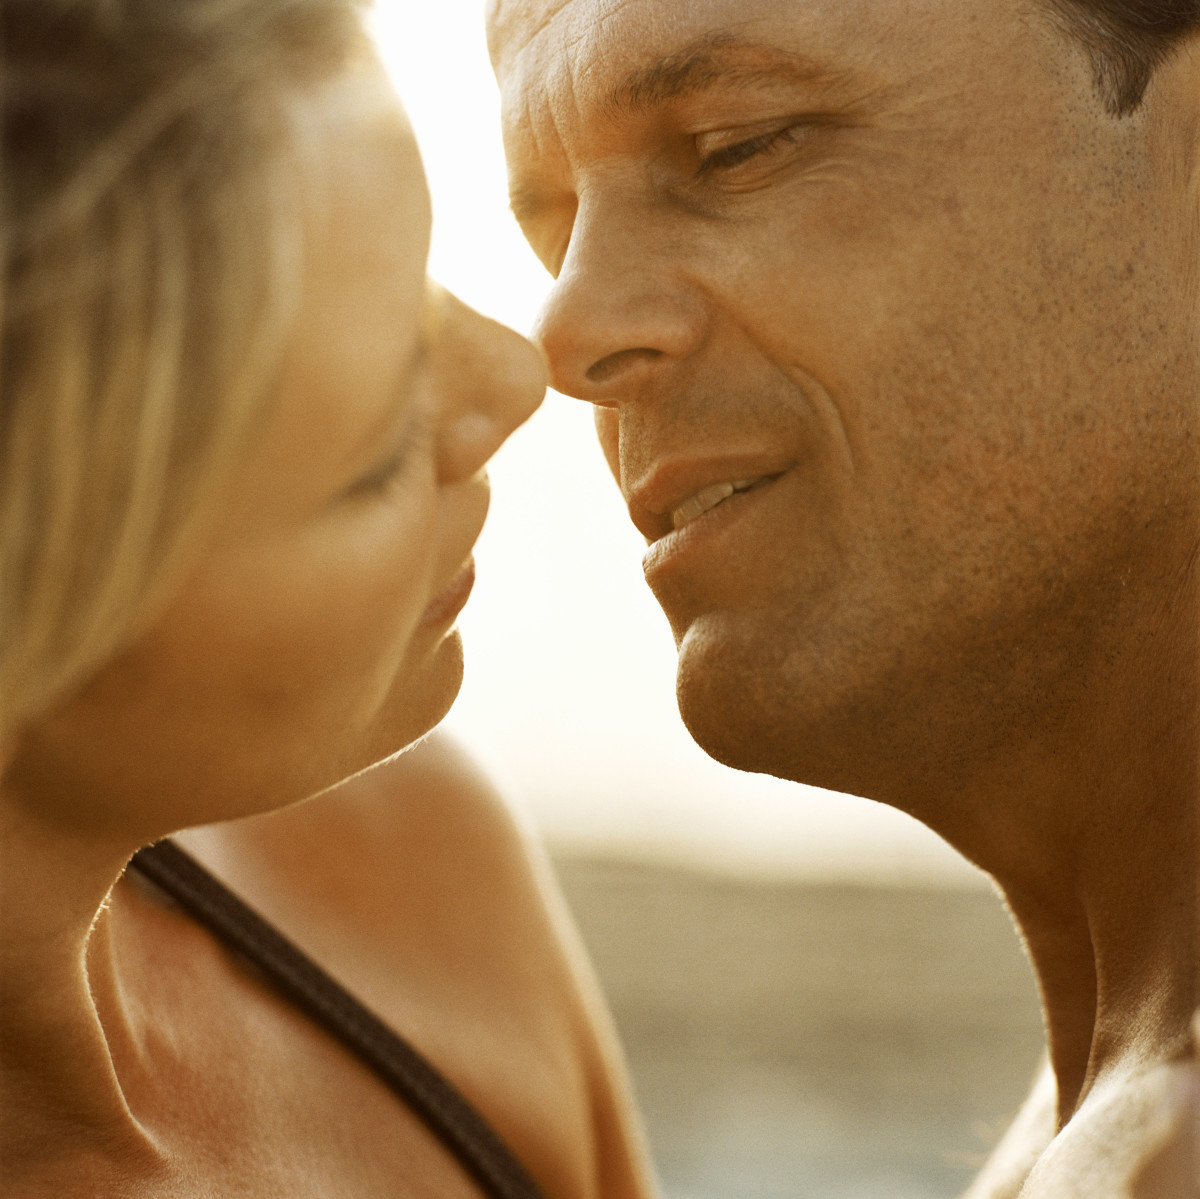 Half of men dont think kissing someone else is cheating photo